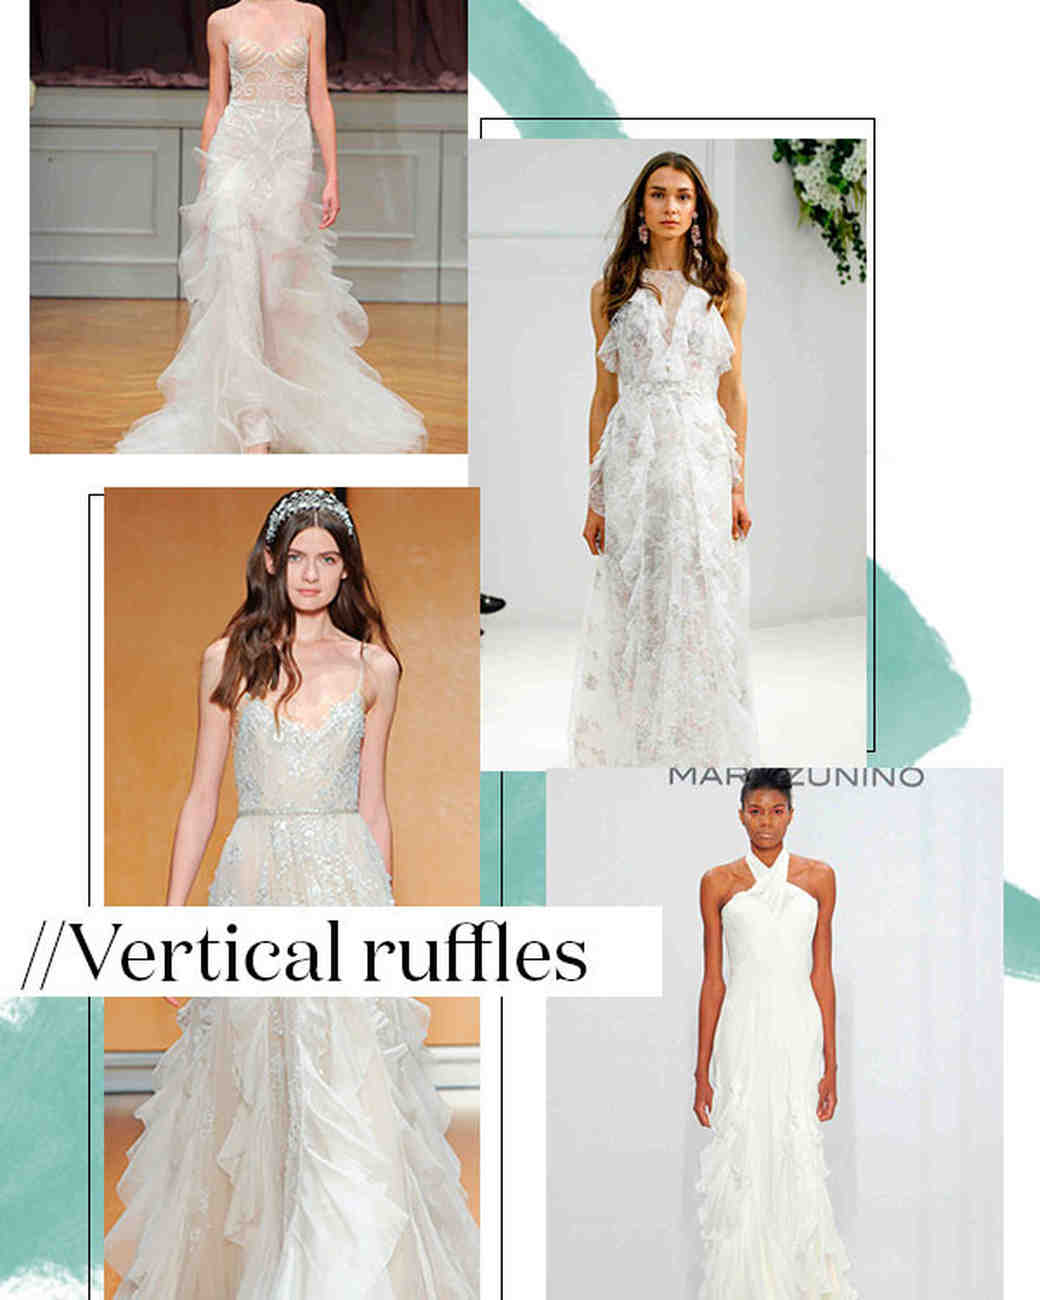 Fall 2017 Wedding Dress Trend: Vertical Ruffles